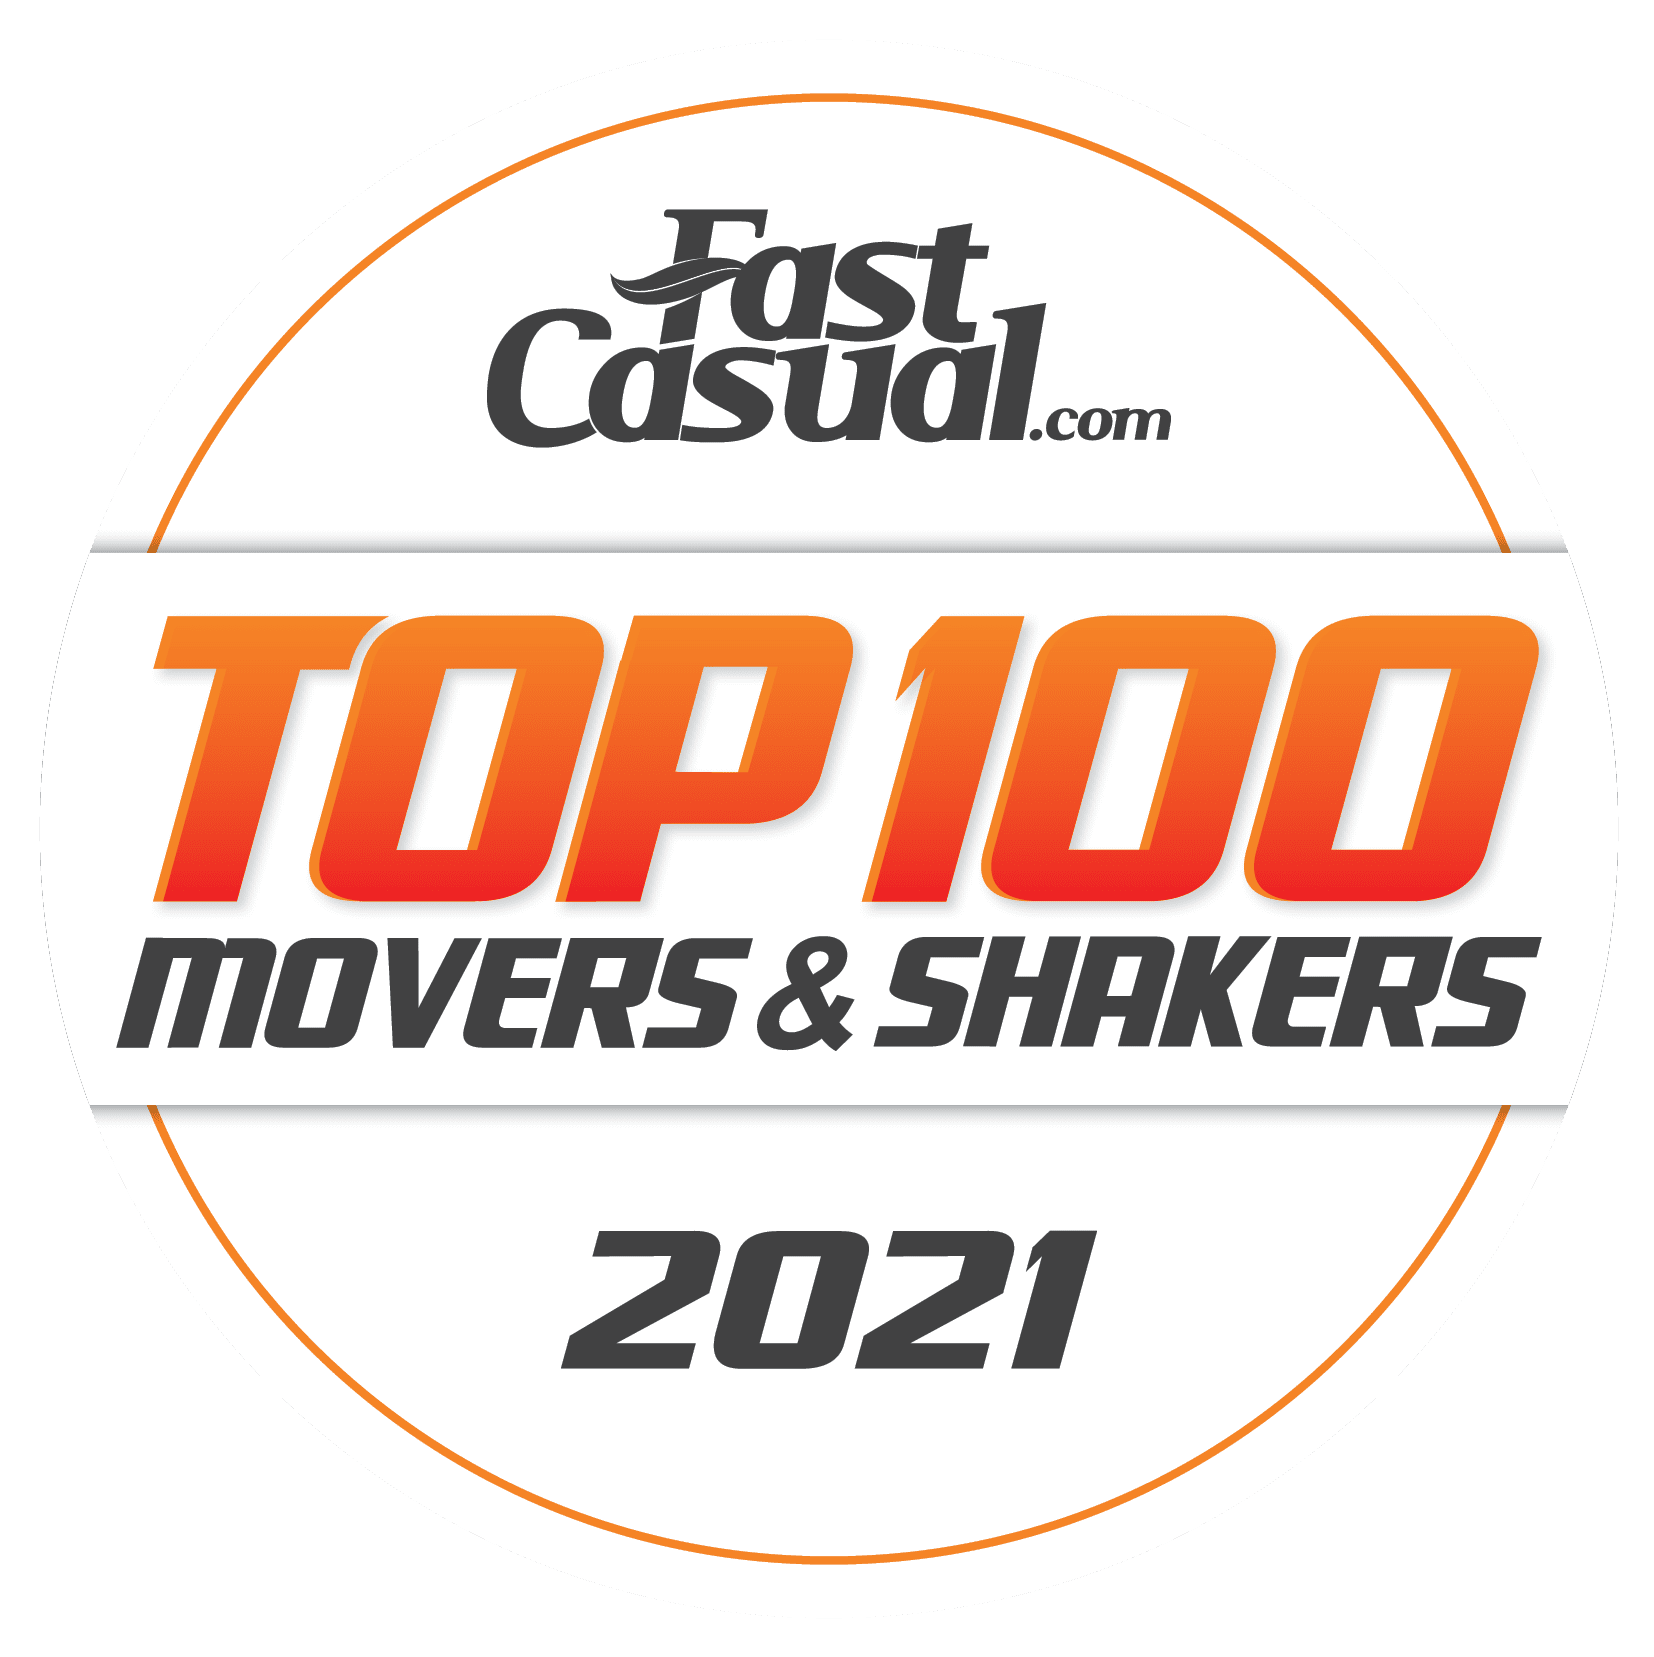 Fast Casual Top 100 Movers & Shakers 2021